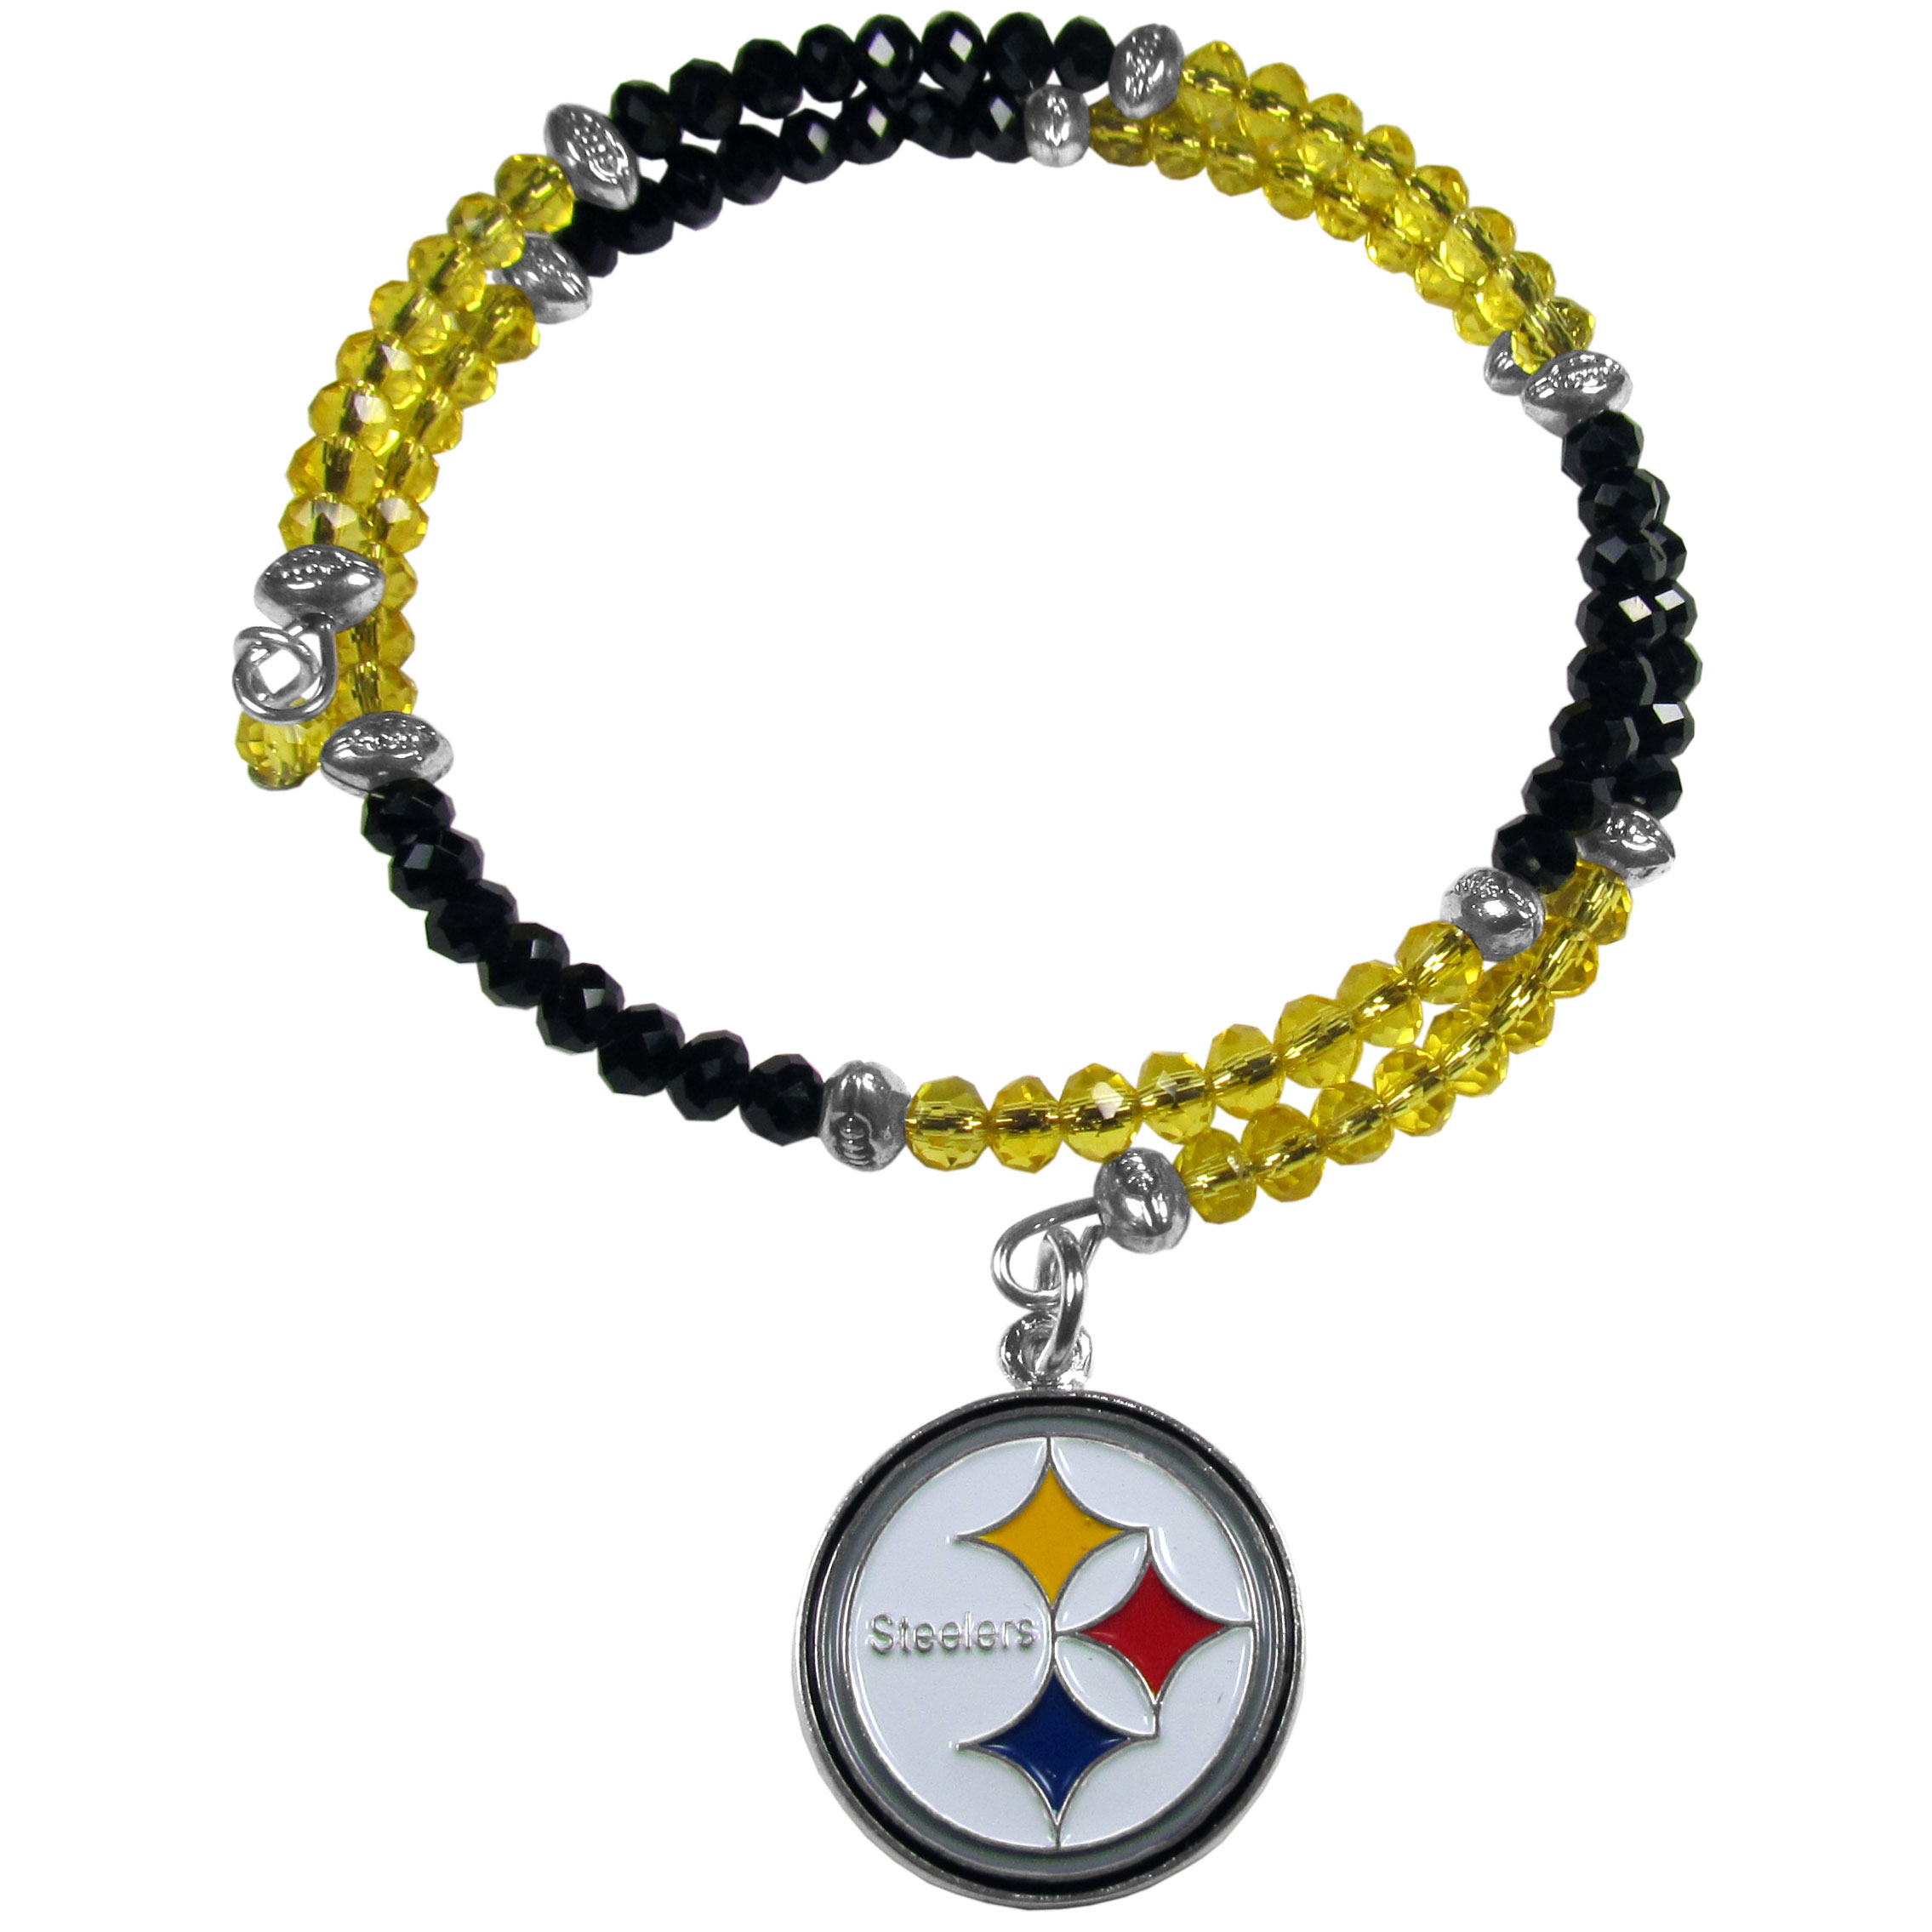 Pittsburgh Steelers Crystal Memory Wire Bracelet - Our Pittsburgh Steelers memory wire crystal bracelet is trendy way to show off your love of the game. The double wrap bracelet is completely covered in 4 mm crystals that are broken up with adorable football beads creating a designer look with a sporty twist. The bracelet features a fully cast, metal team charm that has expertly enameled team colors. This fashion jewelry piece is a must-have for the die-hard fan that chic look that can dress up any outfit.